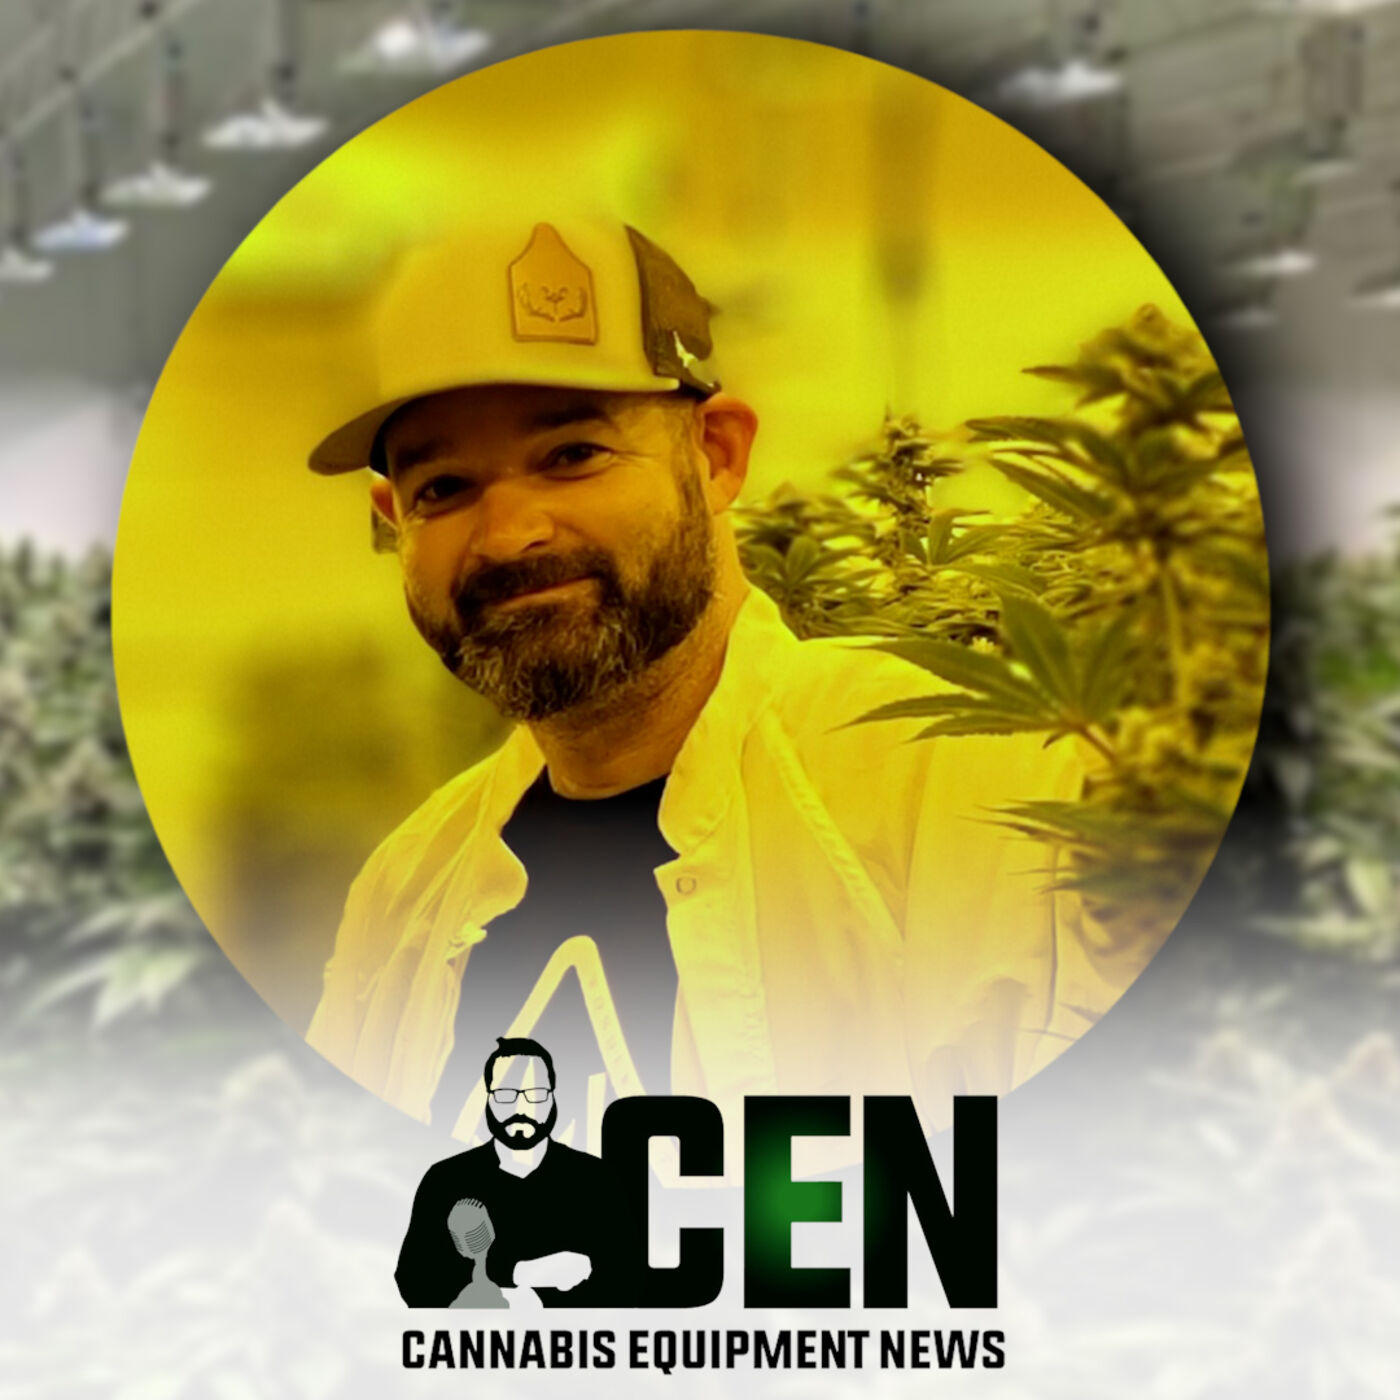 Jesse Elkins: The Henry Ford of the Cannabis Industry